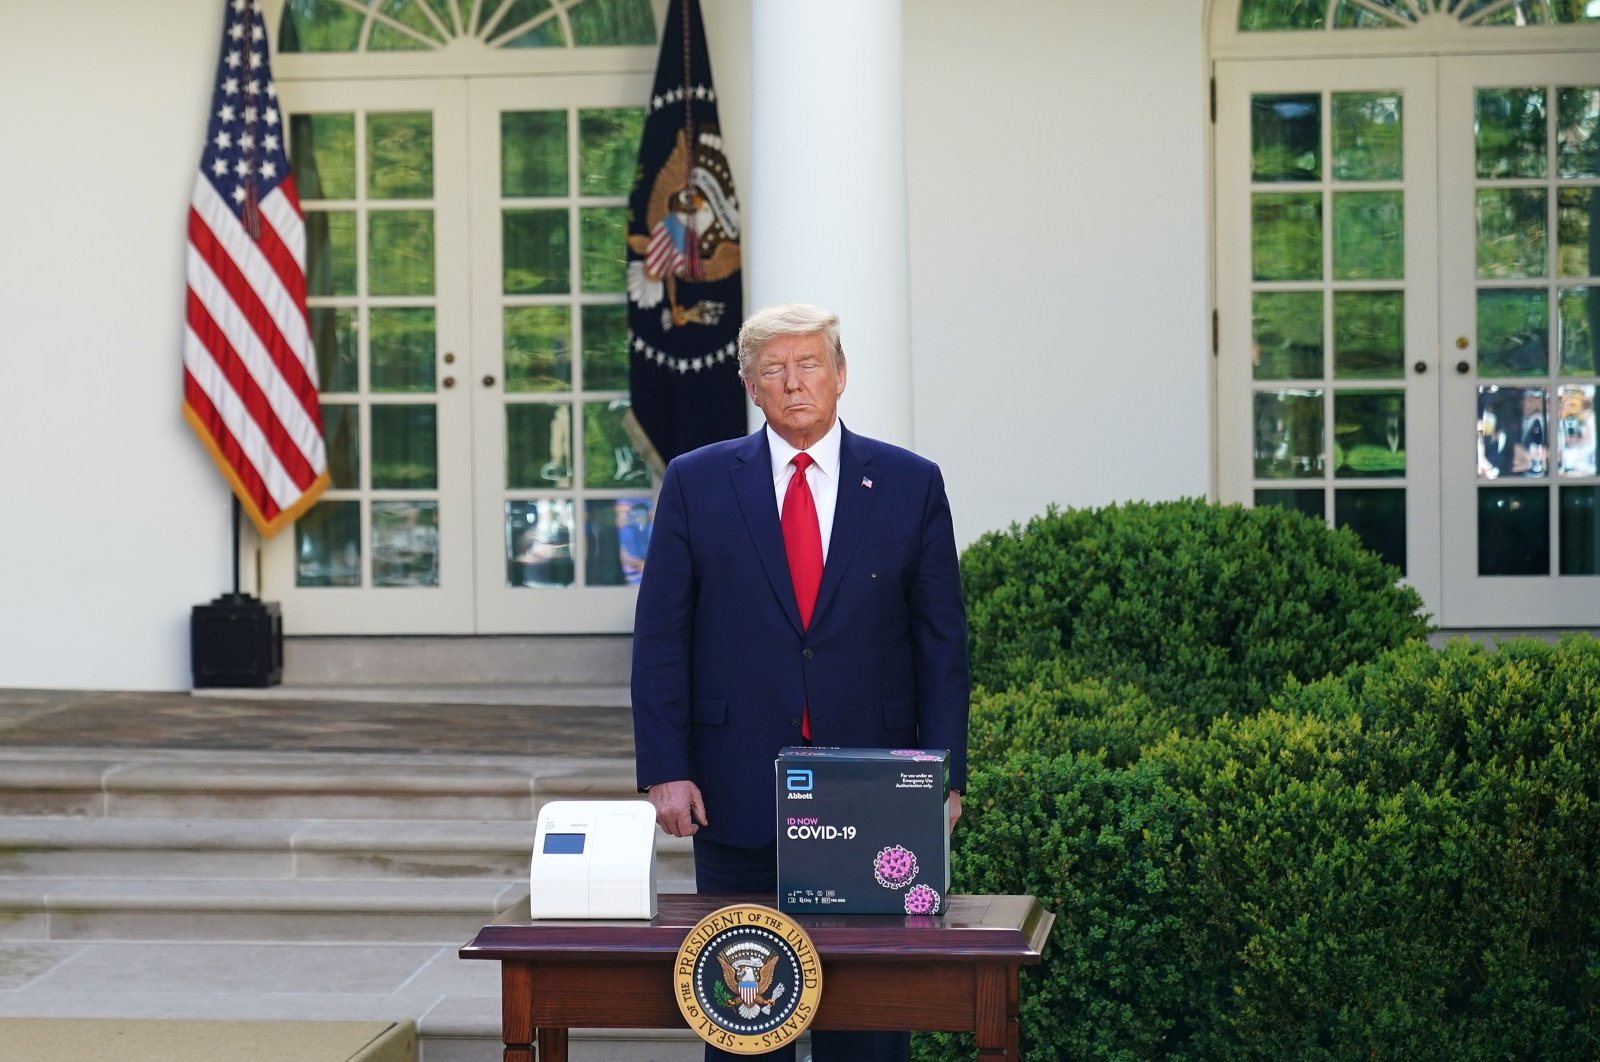 U.S. President Donald Trump stands behind a five-minute test kit for COVID-19 during the daily briefing in the Rose Garden of the White House in Washington, D.C., on Monday, March 30, 2020. (AFP Photo)